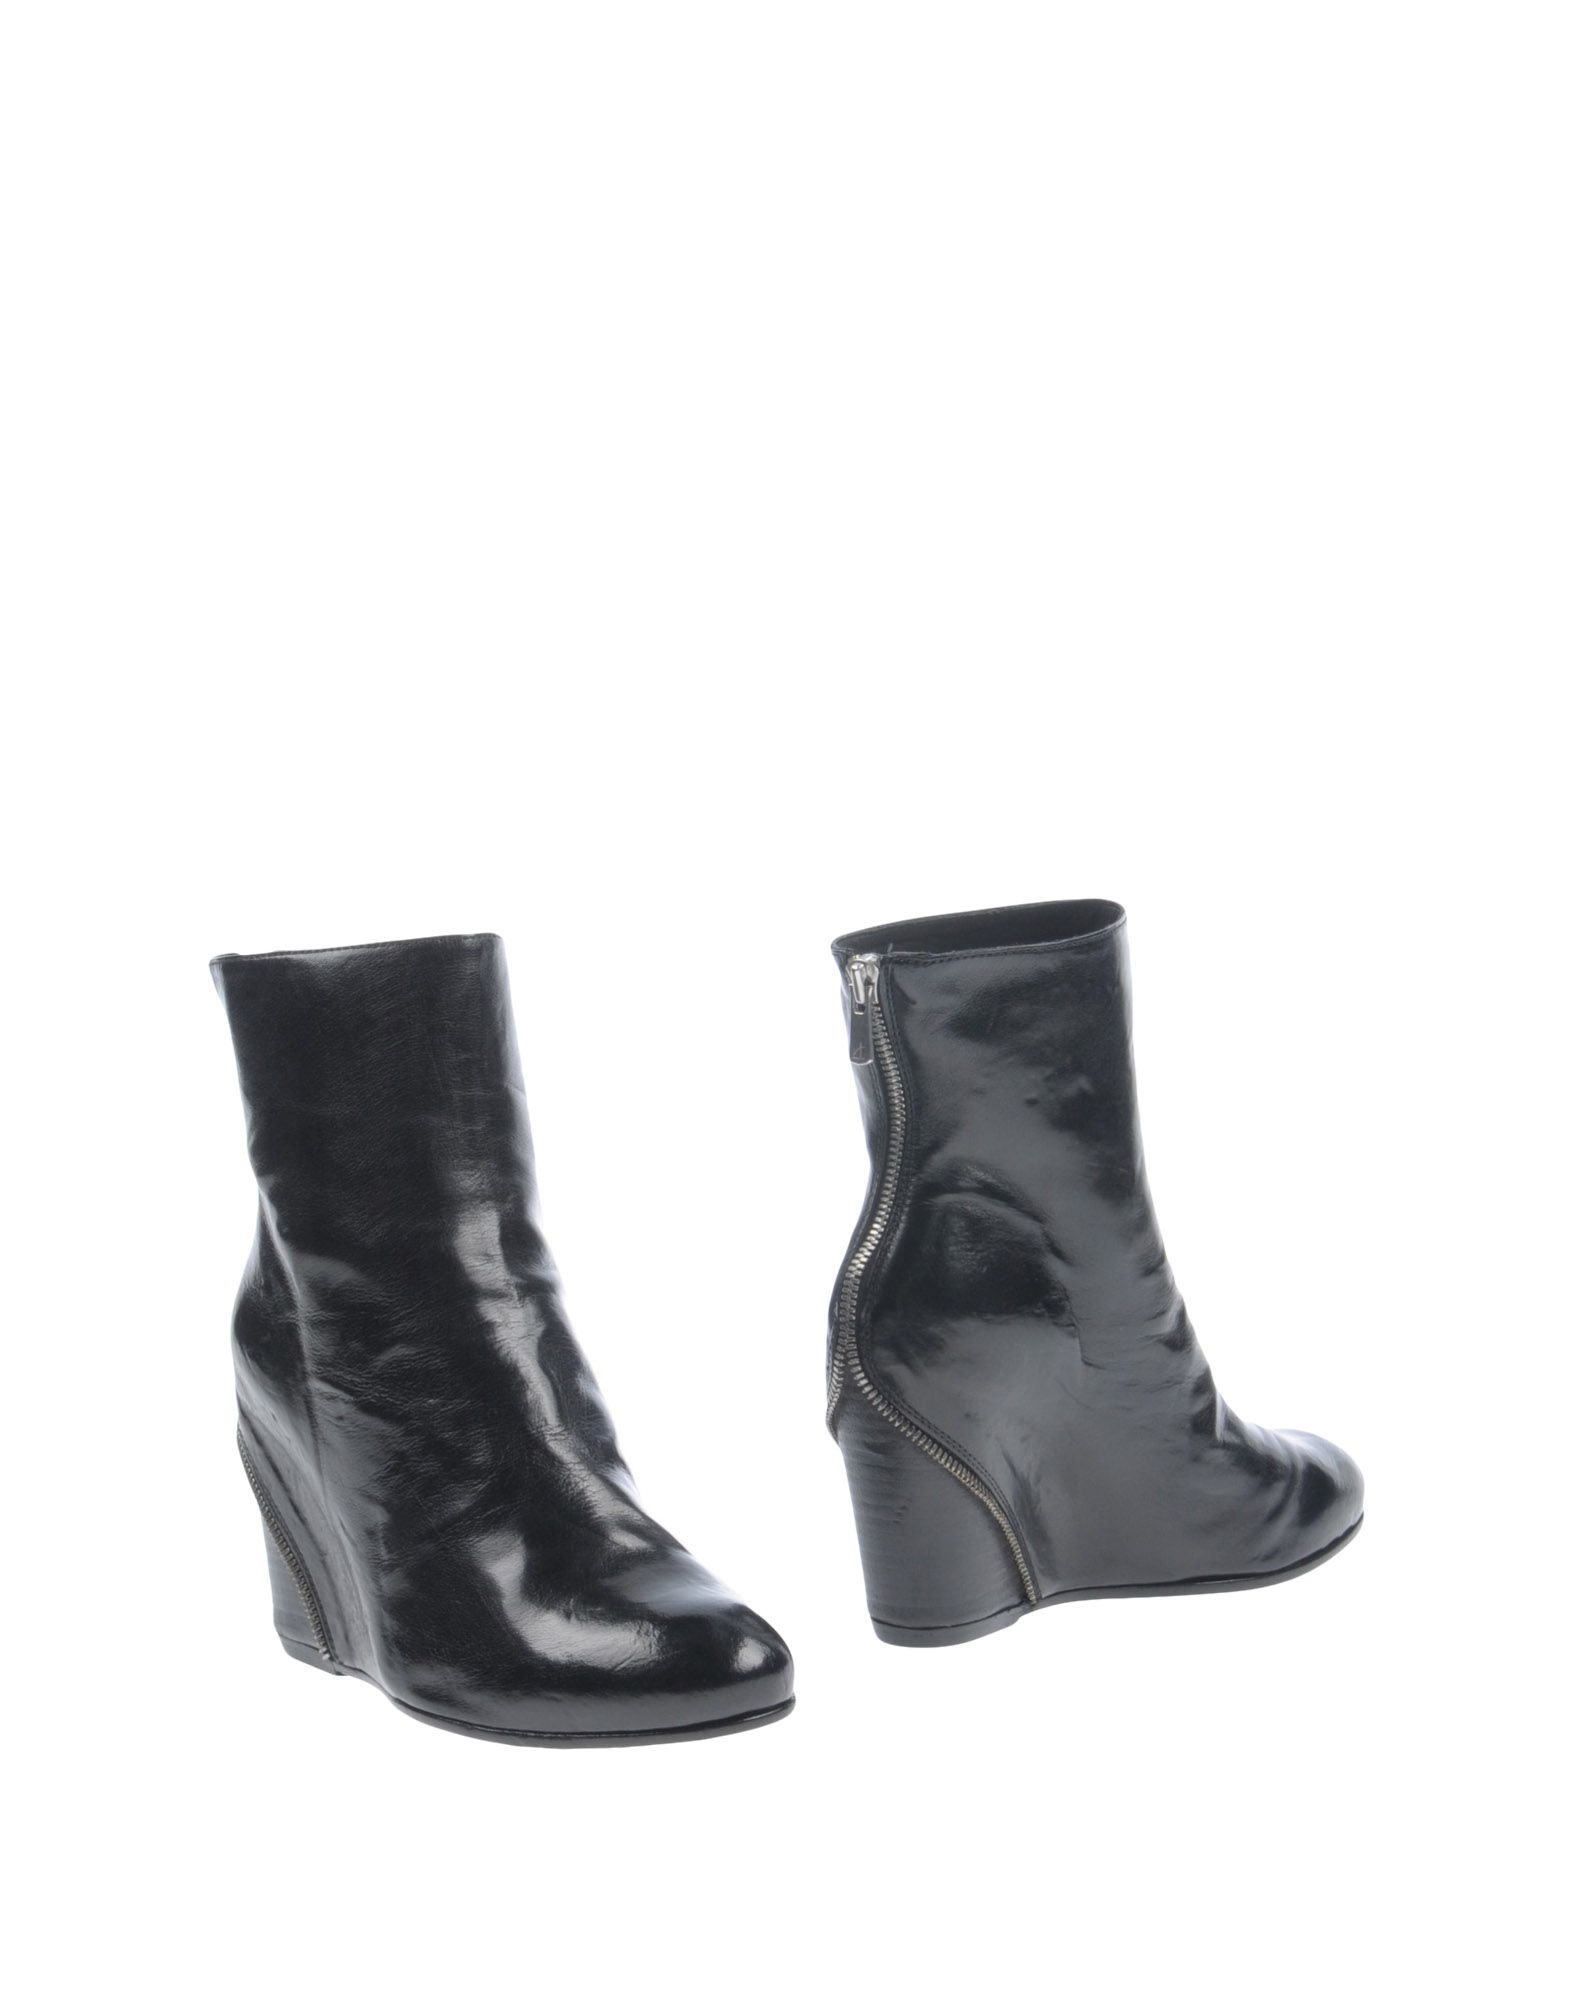 Bottine Officine Creative Italia Femme - Bottines Officine Creative Italia sur